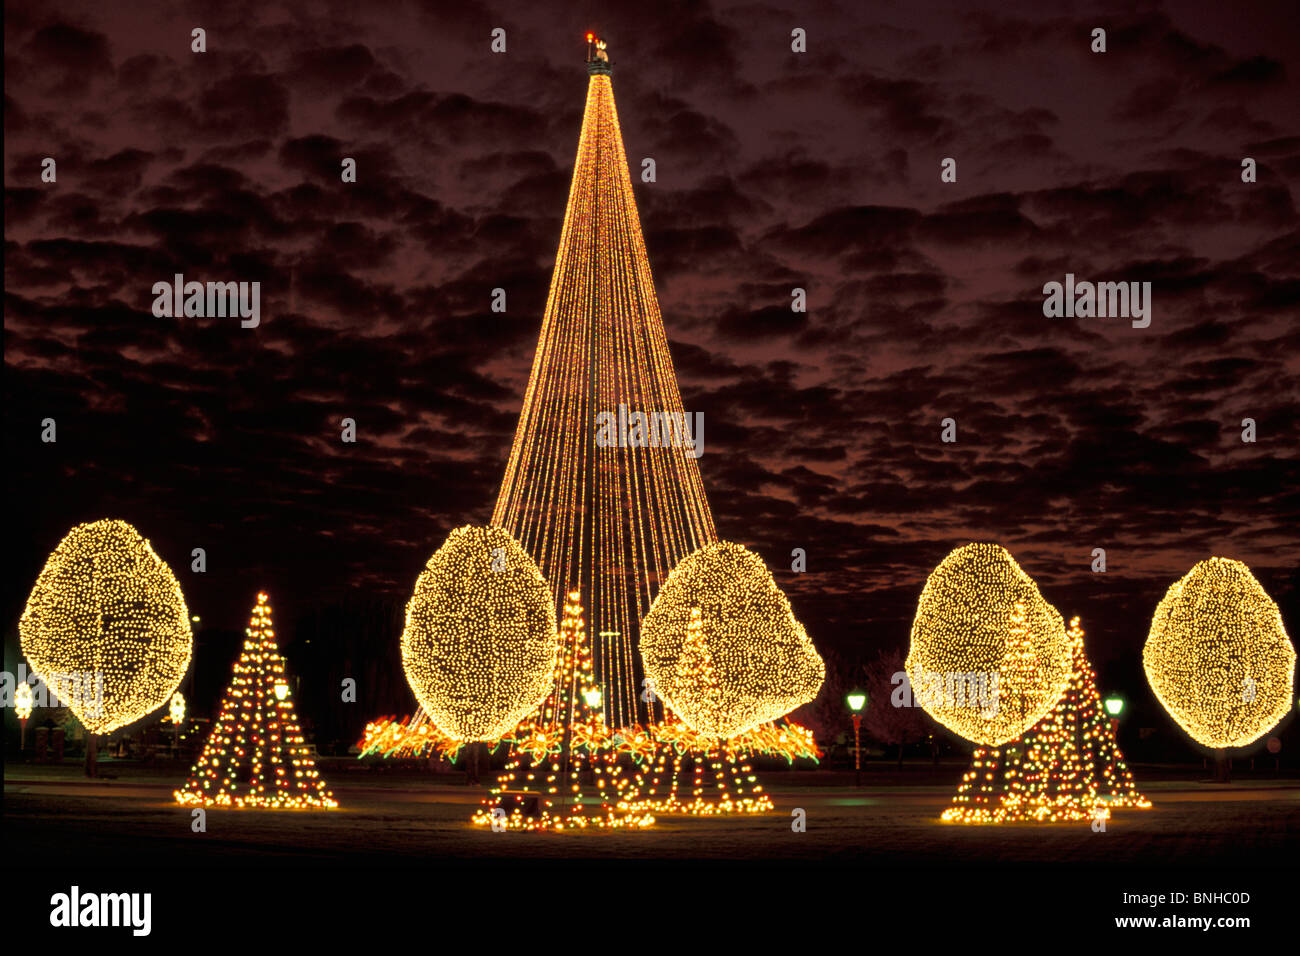 Usa Nashville Tennessee Christmas Decorations At Opryland Hotel Lights Trees Decorated Night Kitsch United States of America Stock Photo